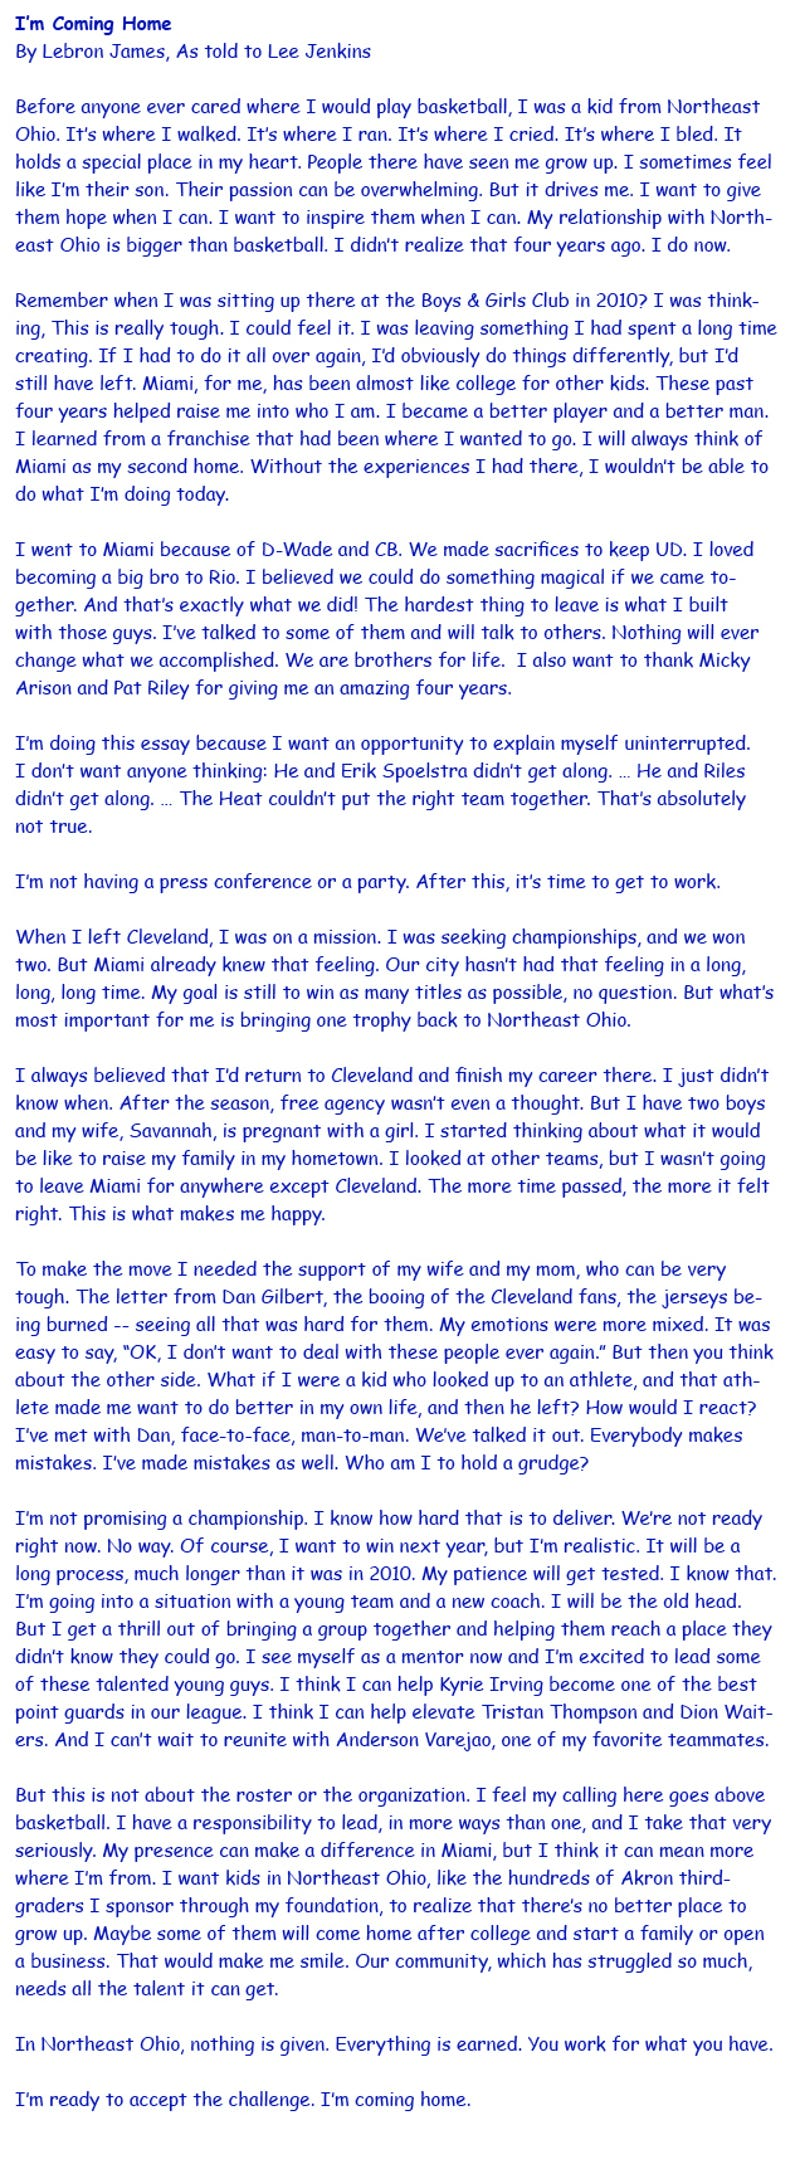 lebron s essay in comic sans